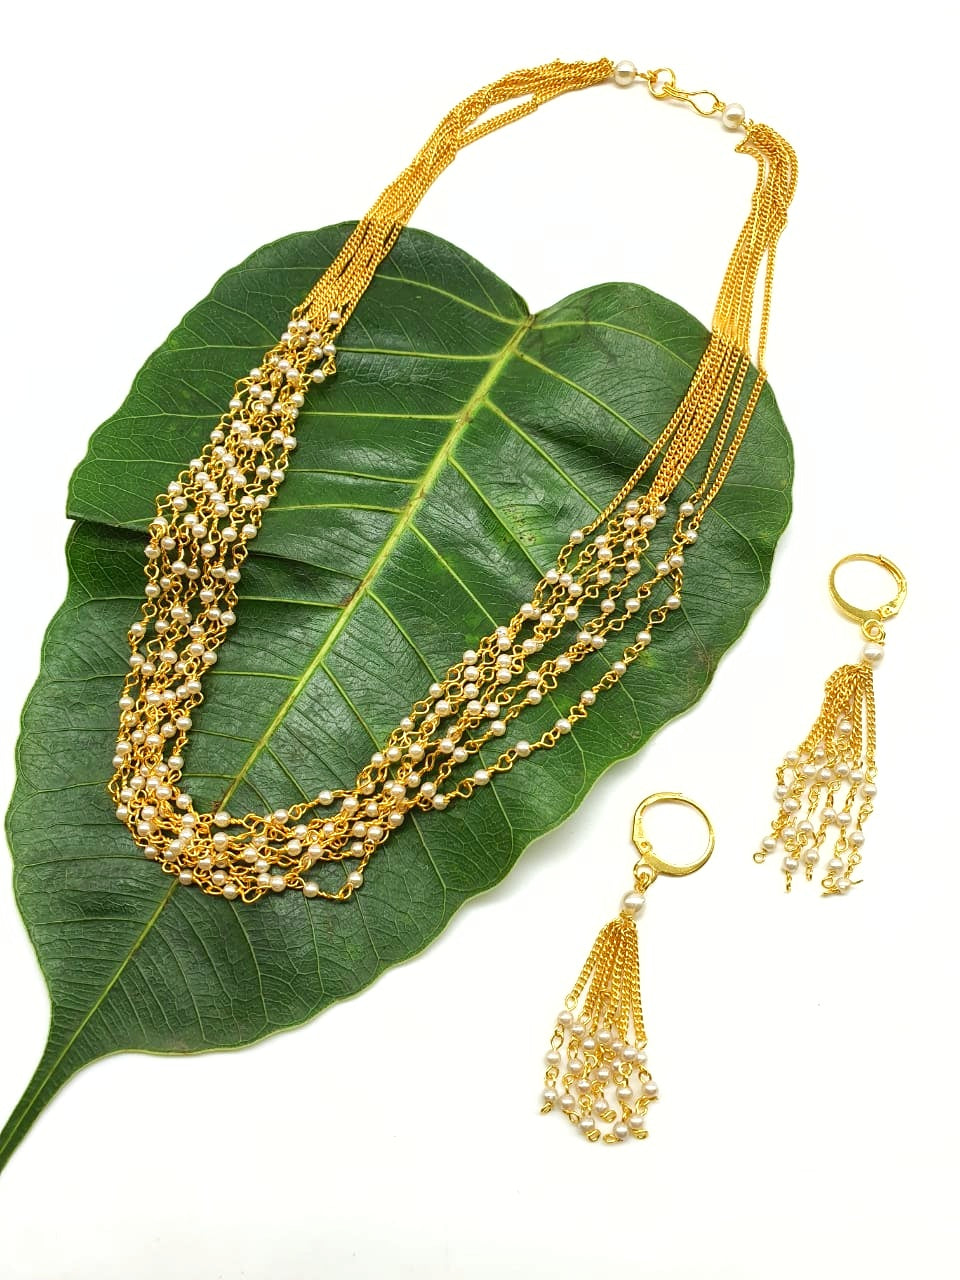 Gold Plated Jewelry Set with Multi Layer Gundla White Pearl Necklace with Hook Earrings - DigitalDressRoom